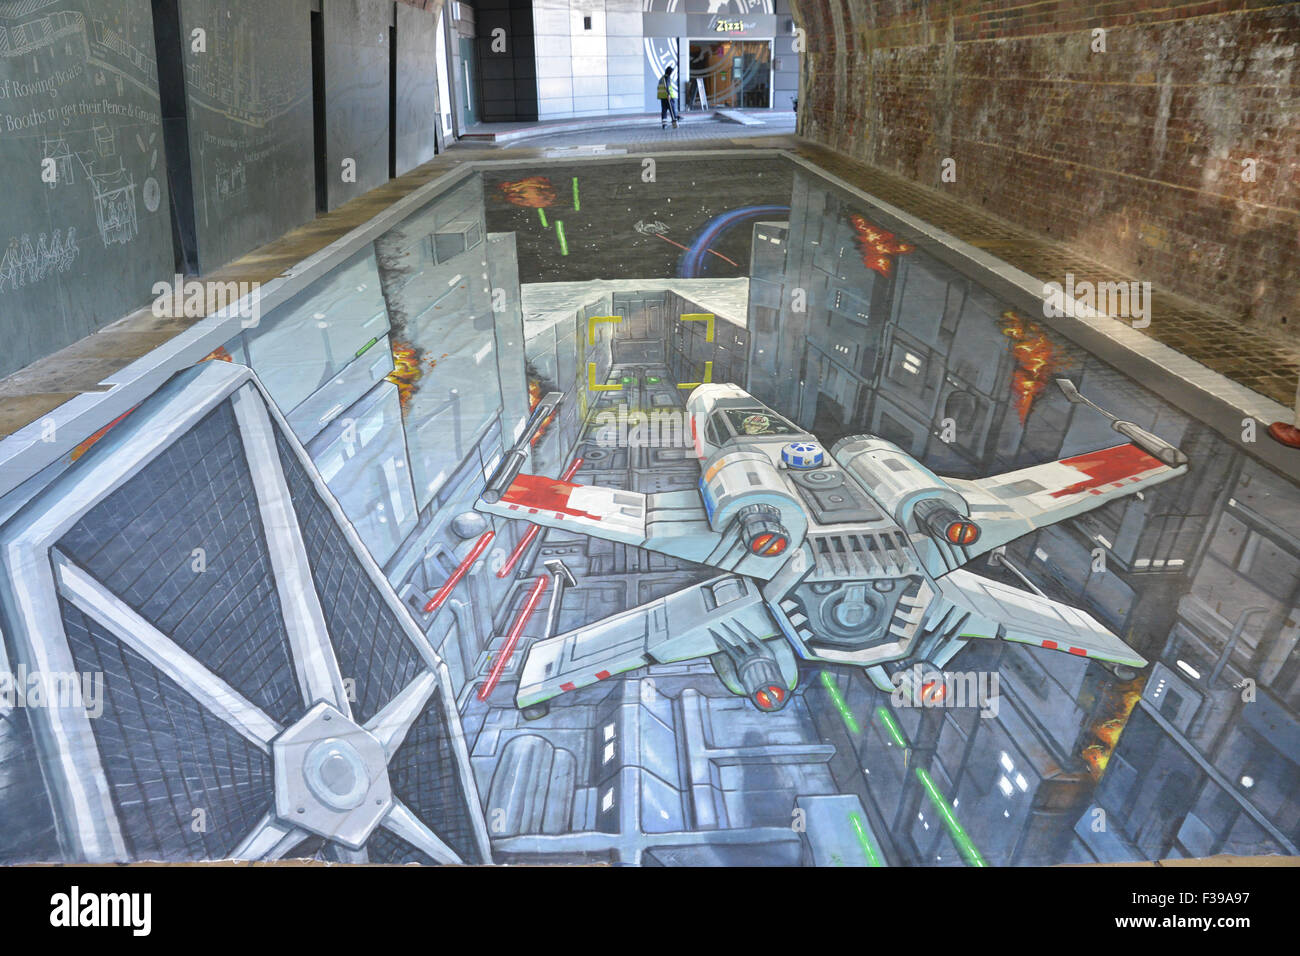 Star Wars Rise Against The Empire game promotion death star trench art Southwark Bridge - Stock Image